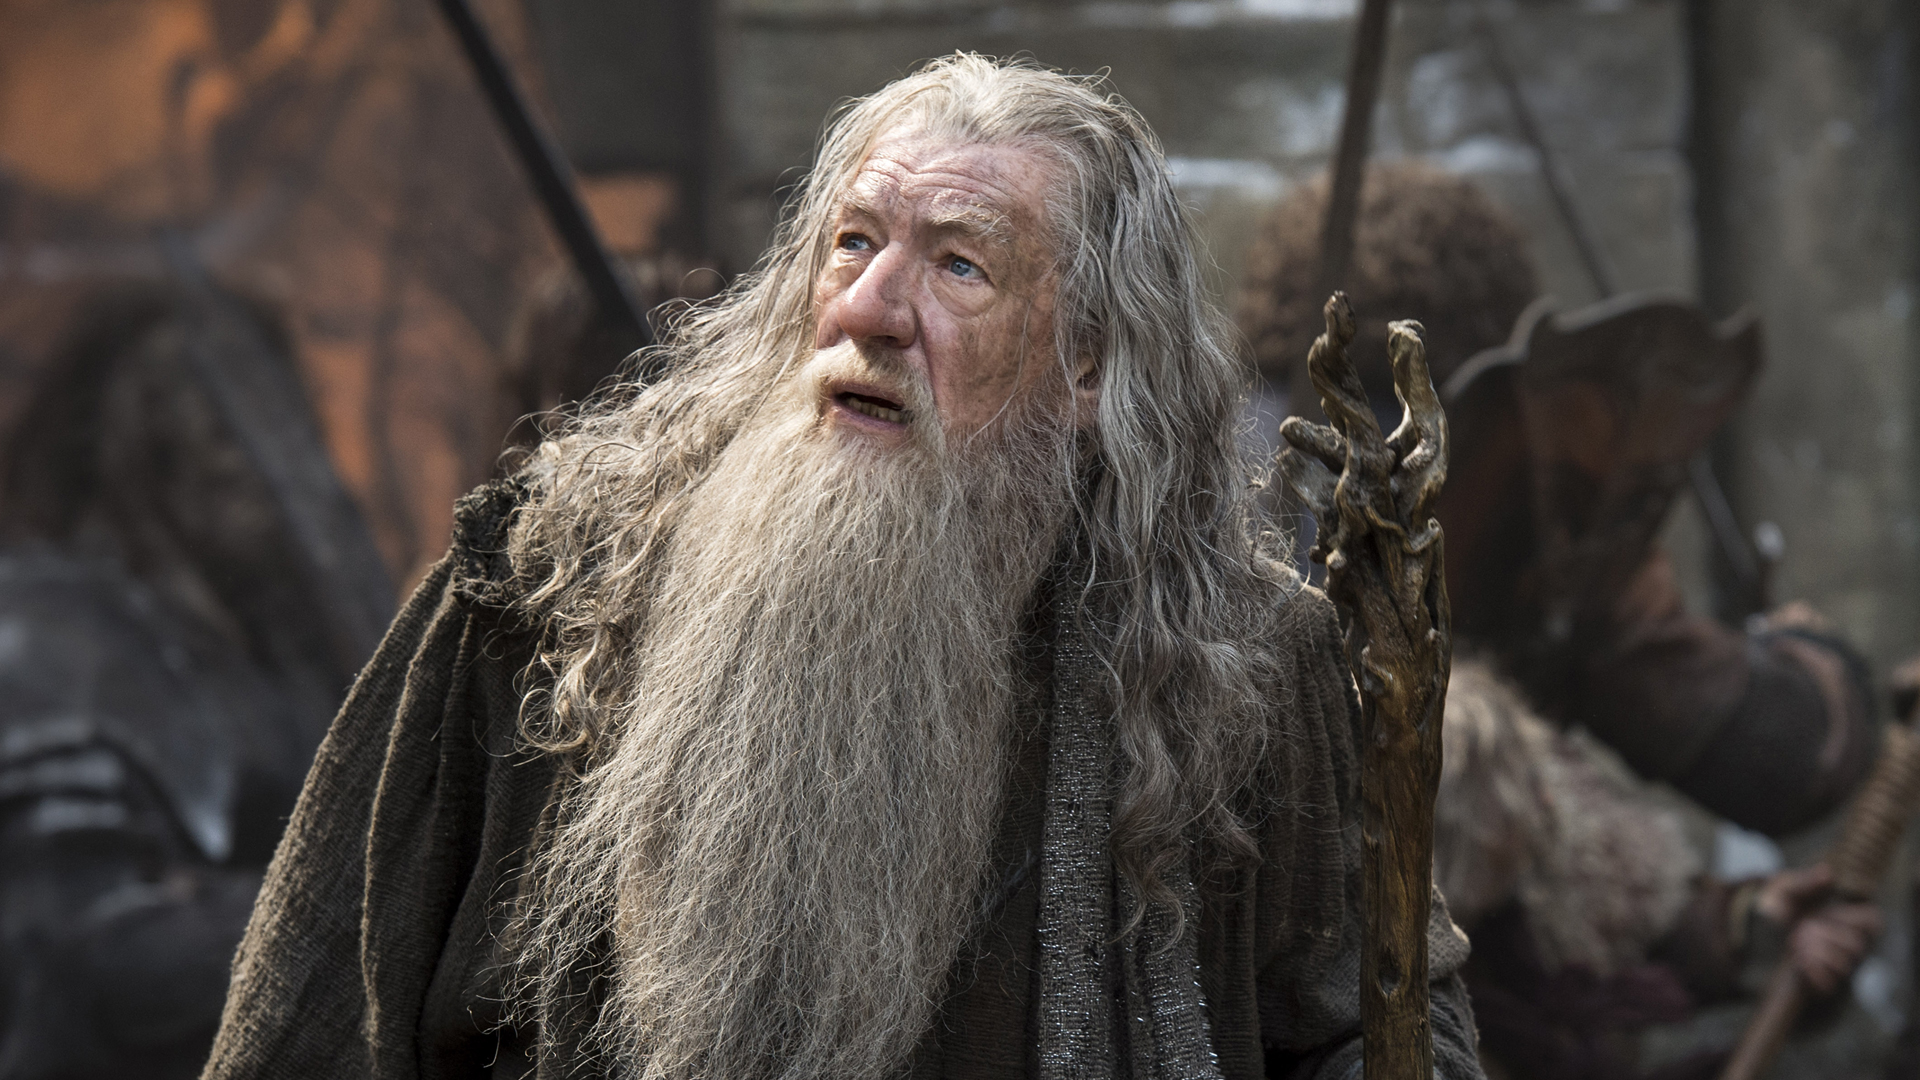 the-hobbit-3-gandalf-2014-high-definition-picture-1920x1080